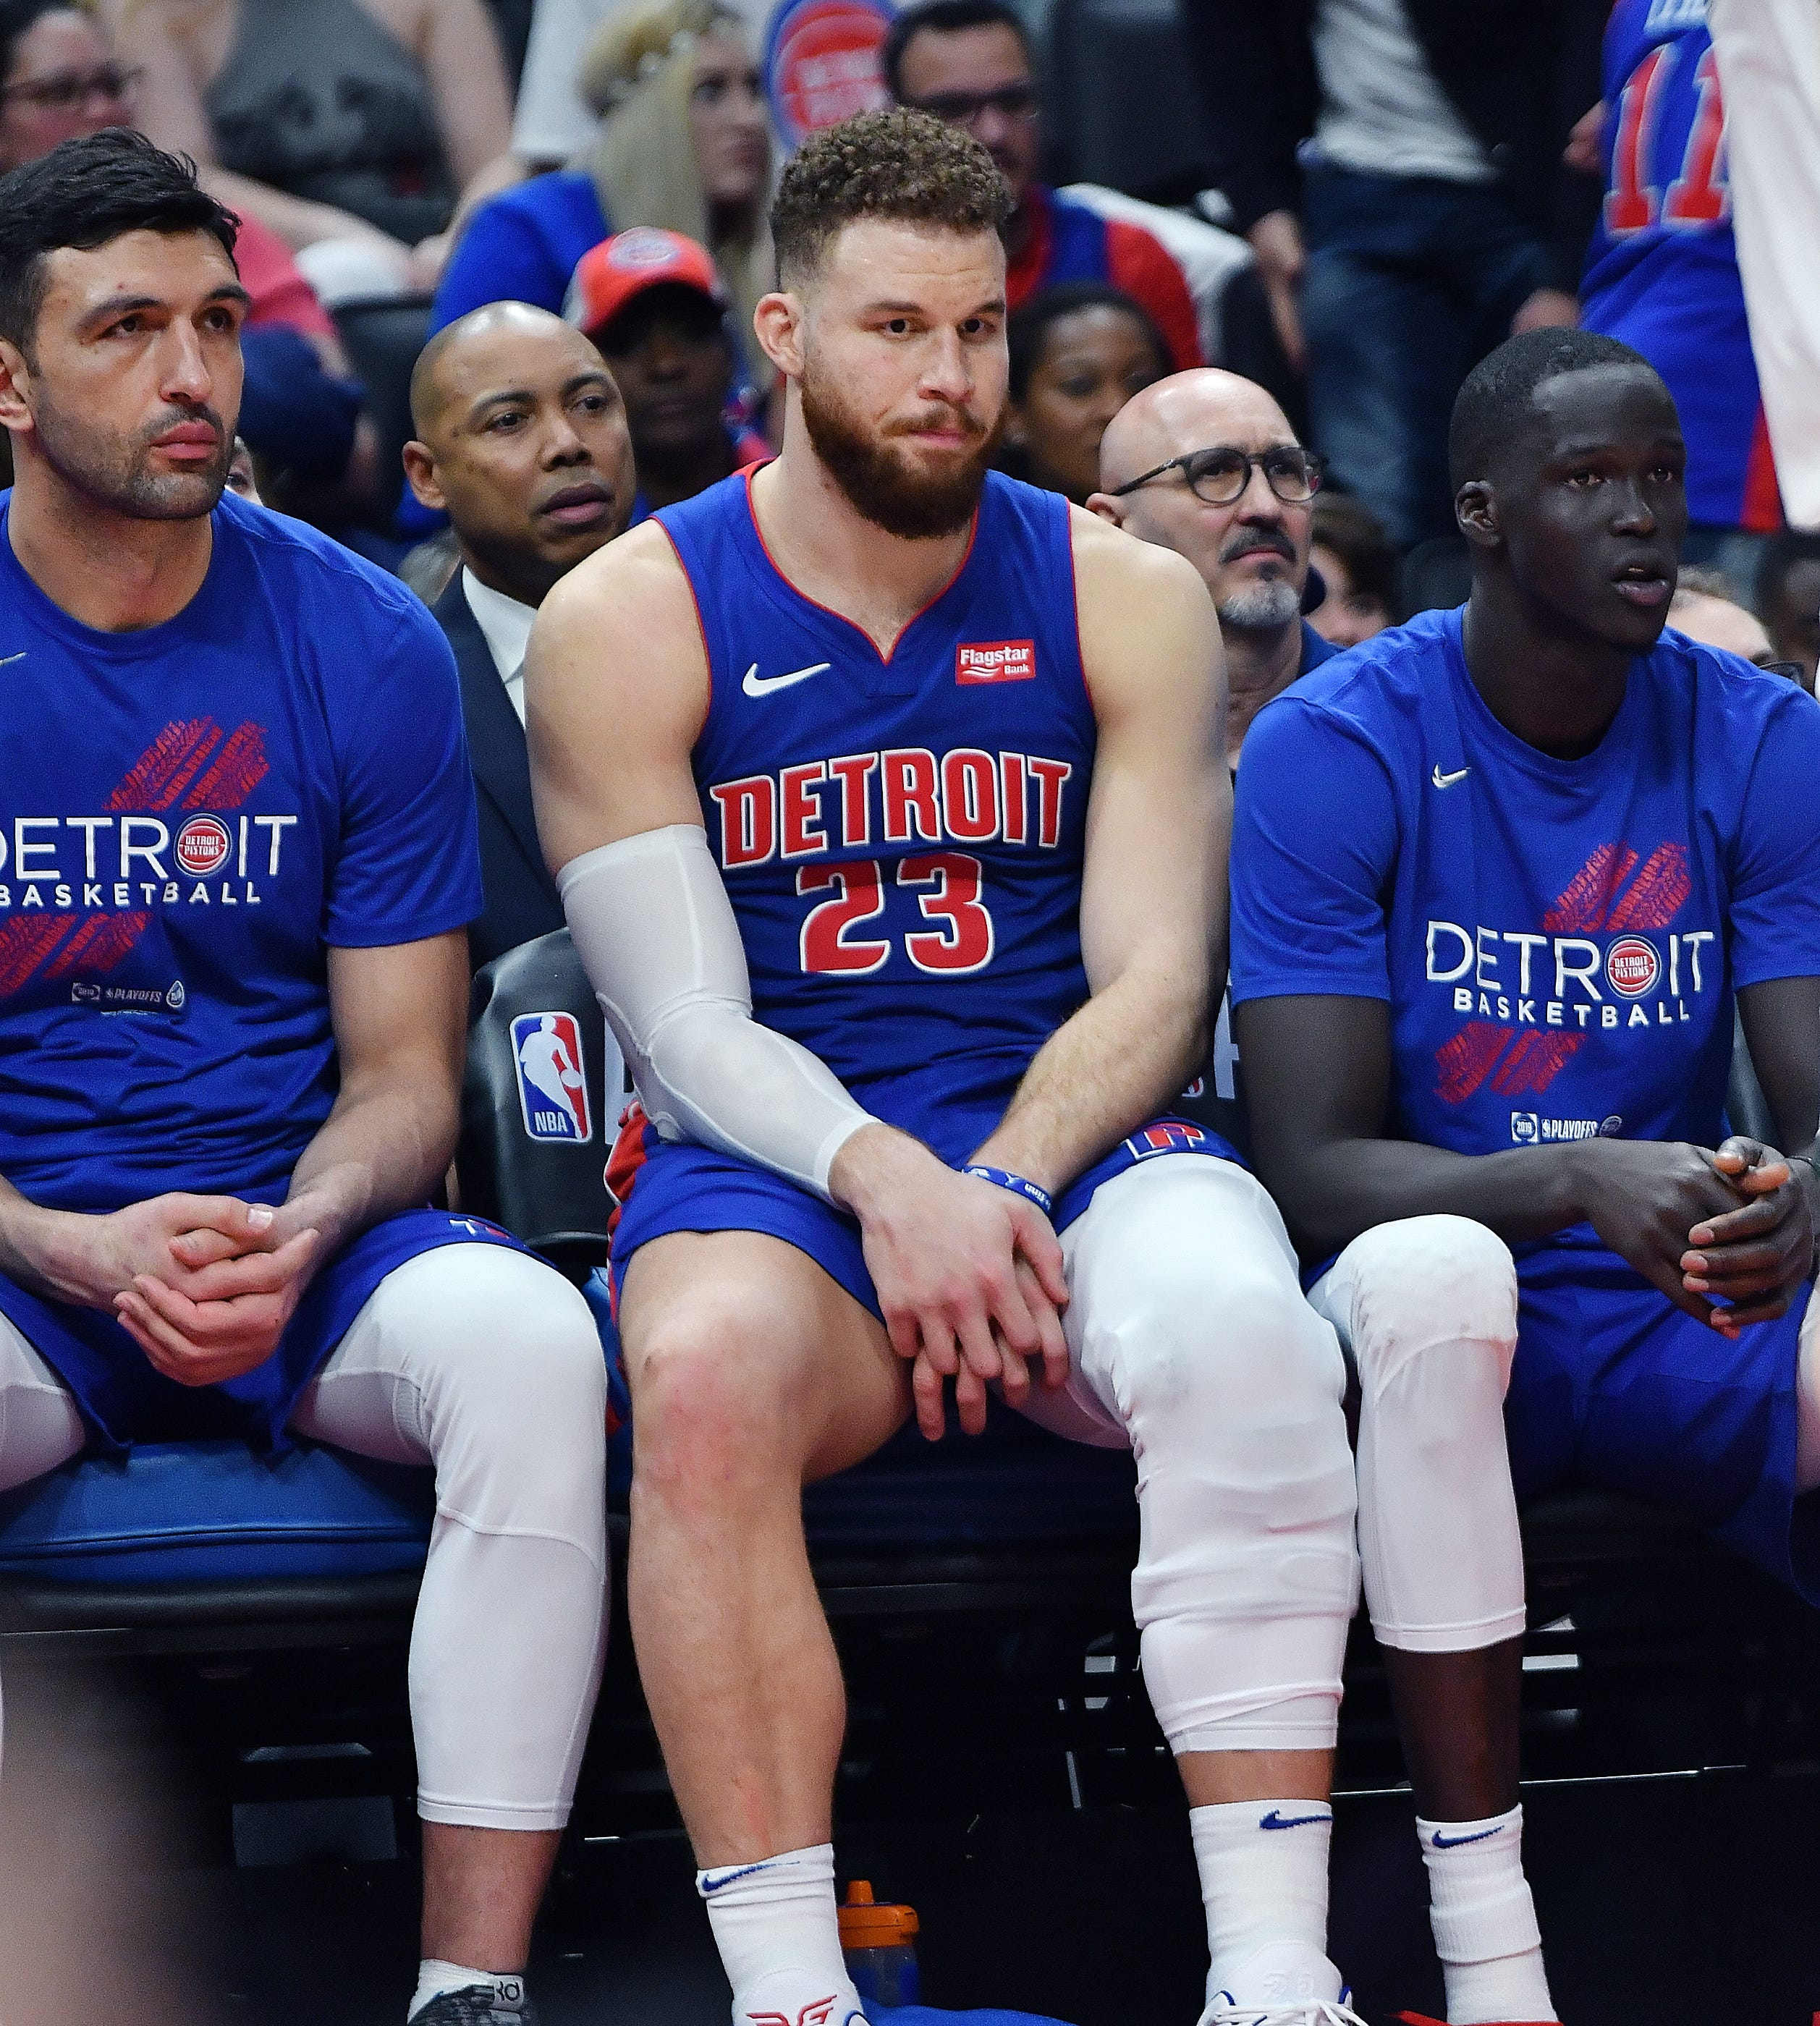 A dejected Blake Griffin, center, Zaza Pachulia, left, and Thon Maker sit on the bench late in the fourth quarter. Griffin had a game-high 27 points.